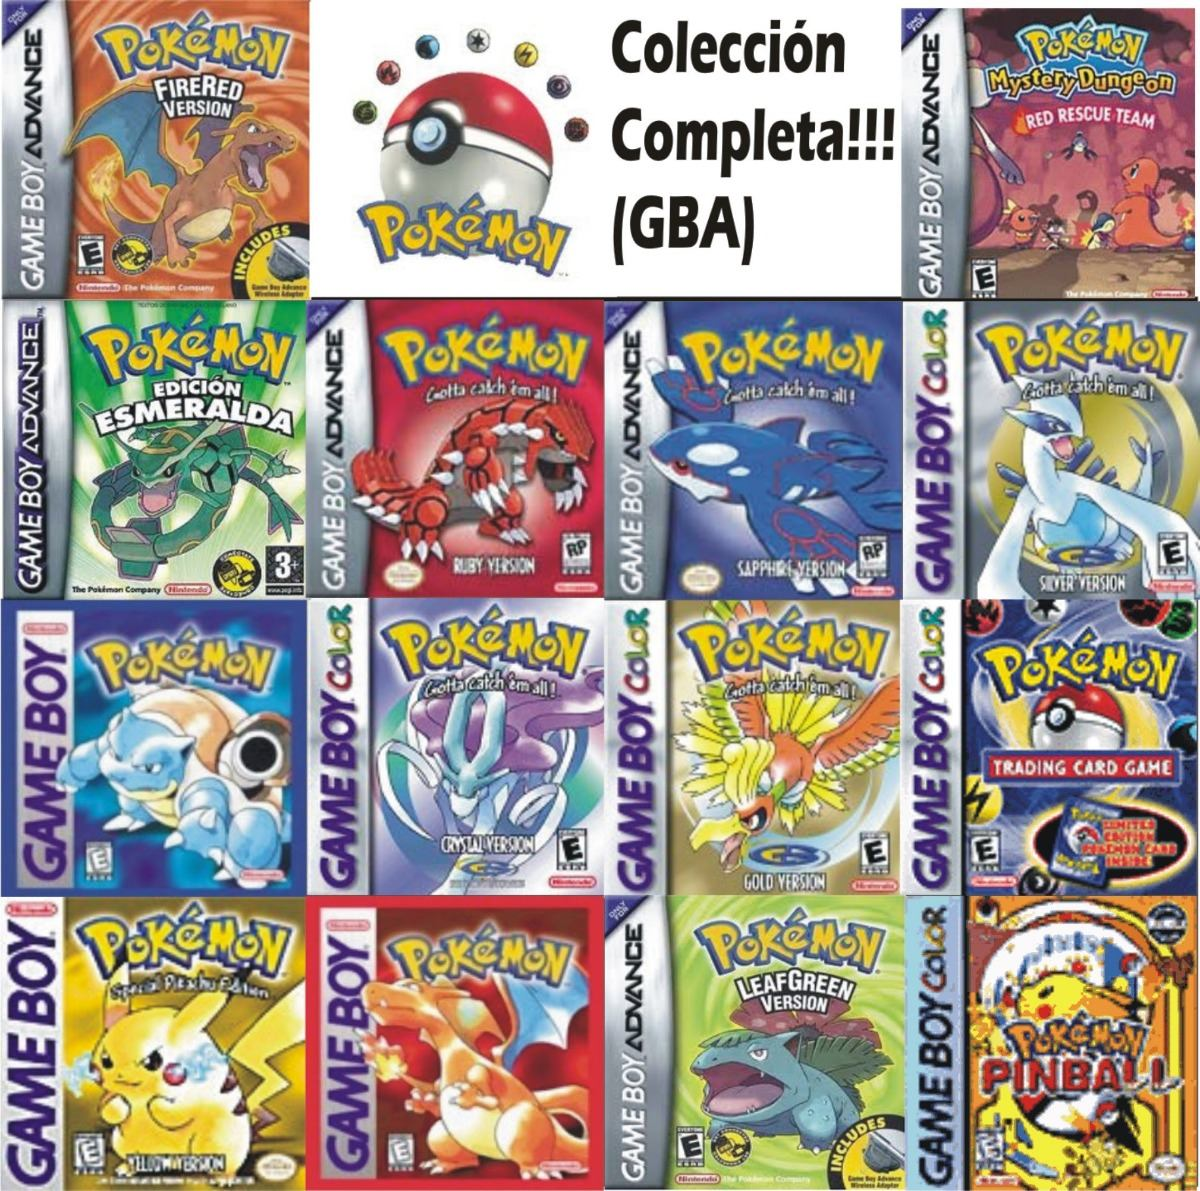 Juegos Digitales De Pokemon Para Gameboy Gb Gbc Gba Bs 0 80